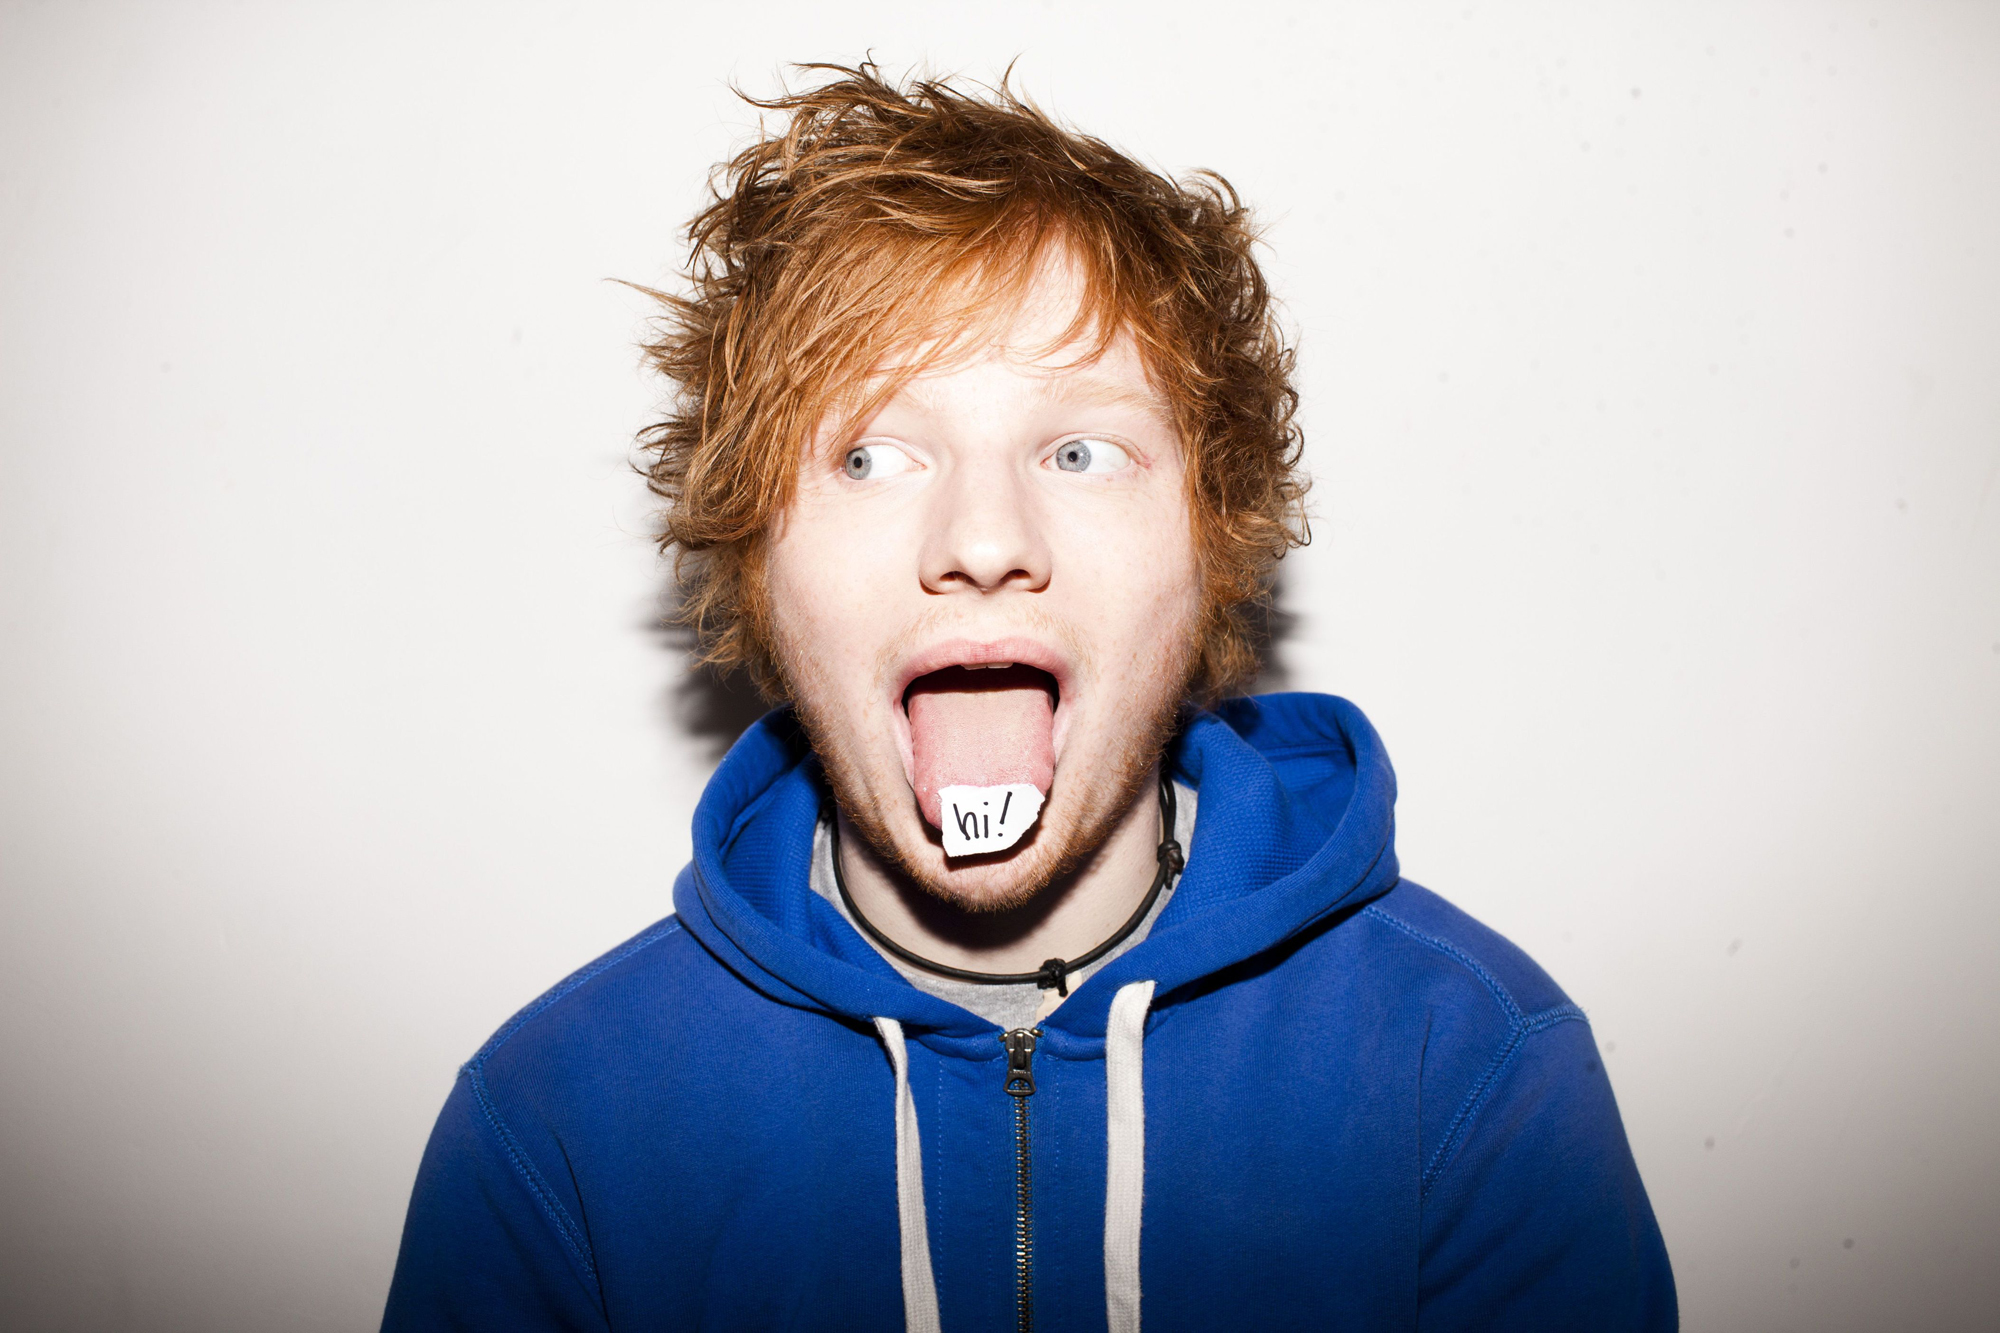 http://www.playbuzz.com/sizzlingtea10/which-ed-sheeran-song-are-these-lyrics-from